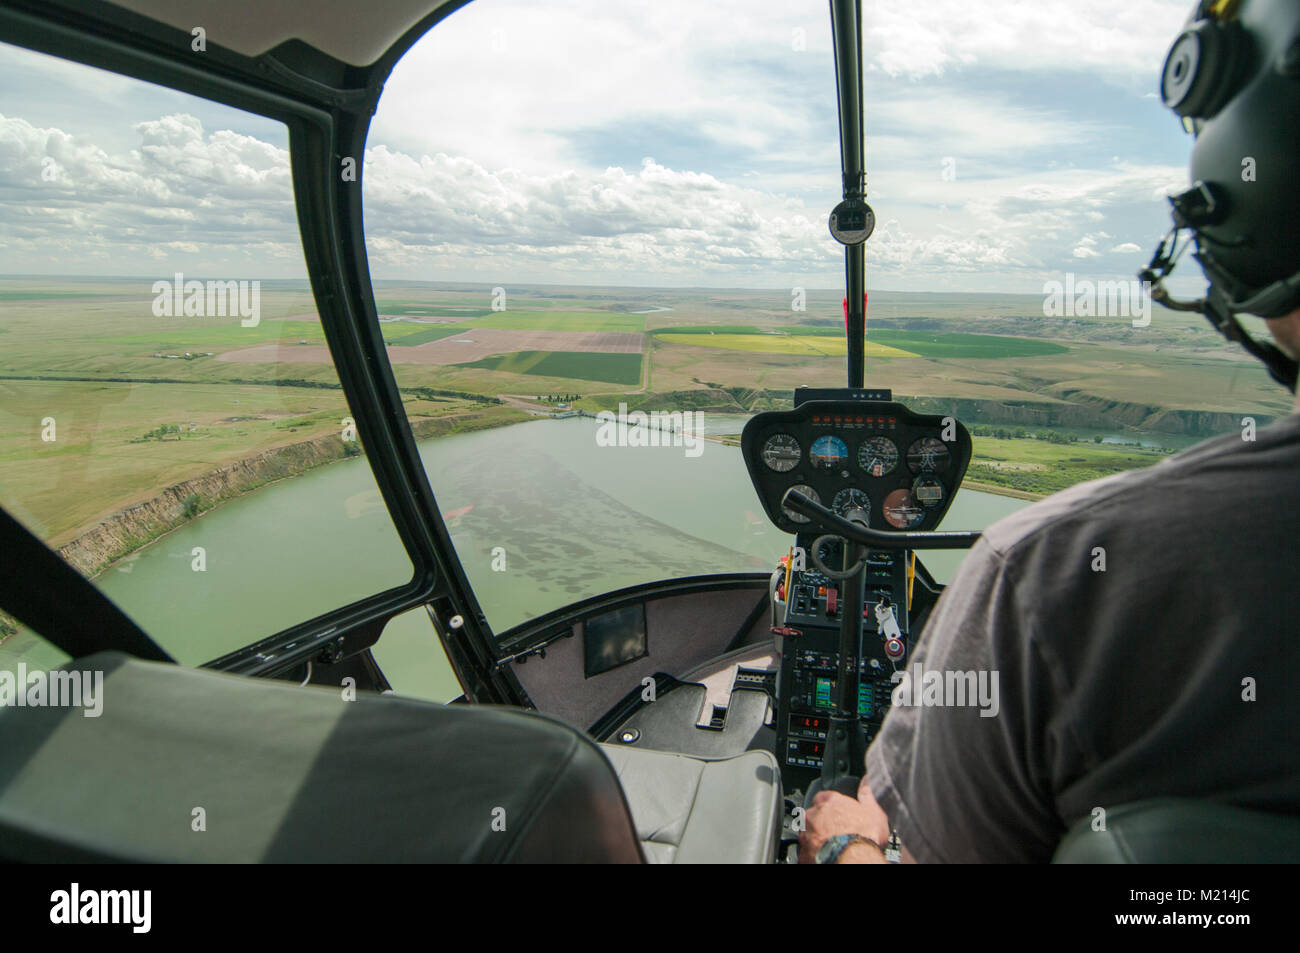 Bassano Dam, Alberta, Canada.  Aerial view looking south from behind the cockpit of a helicopter in the summer. - Stock Image